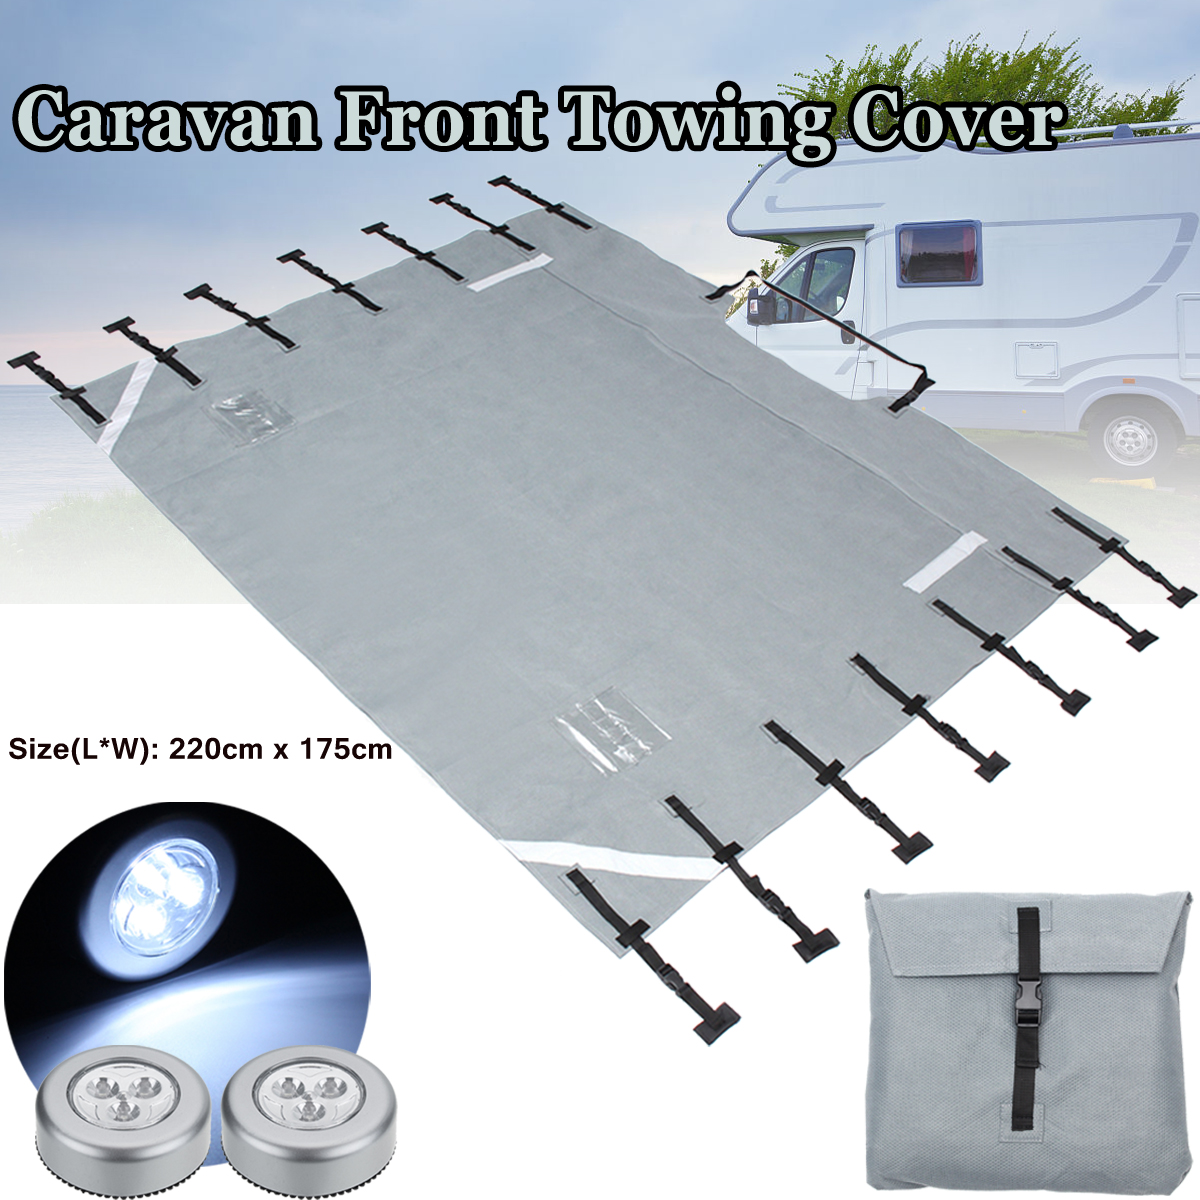 Grey Universal Caravan Front Towing Cover Protector Reflective Strips For RV Motorhome With 2 LED Lights